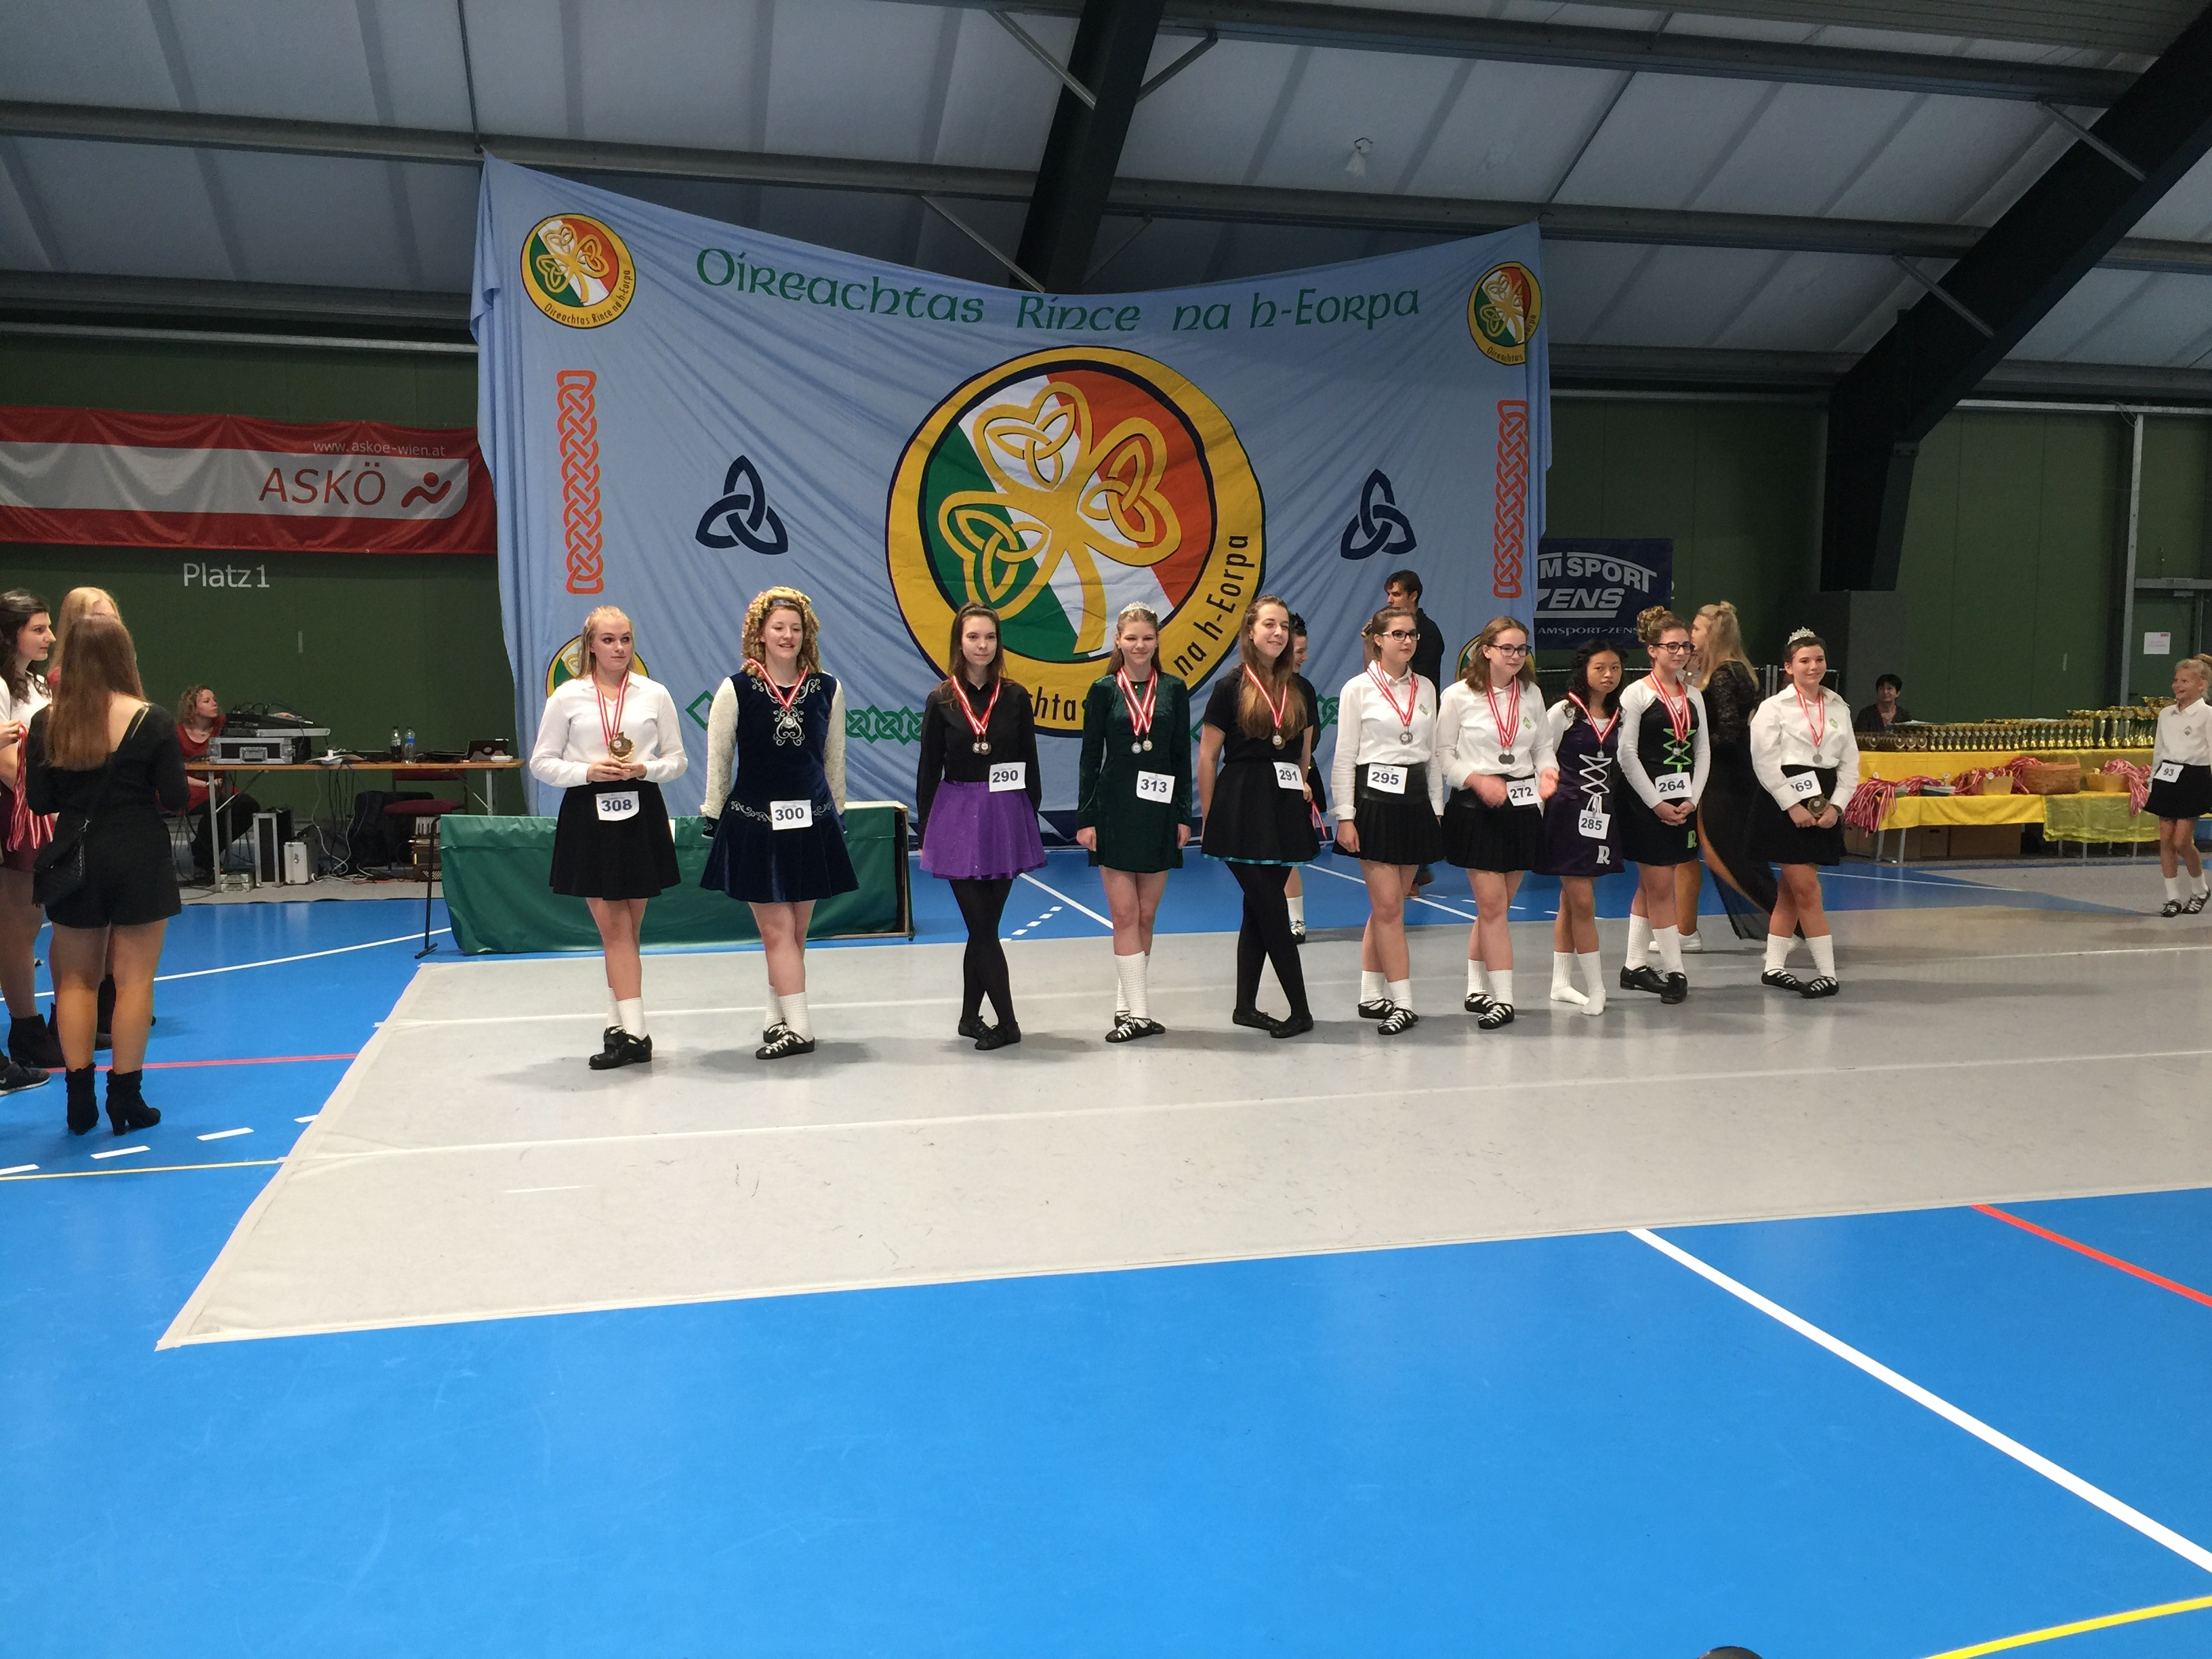 Rose Irish Dance Bergen op Zoom